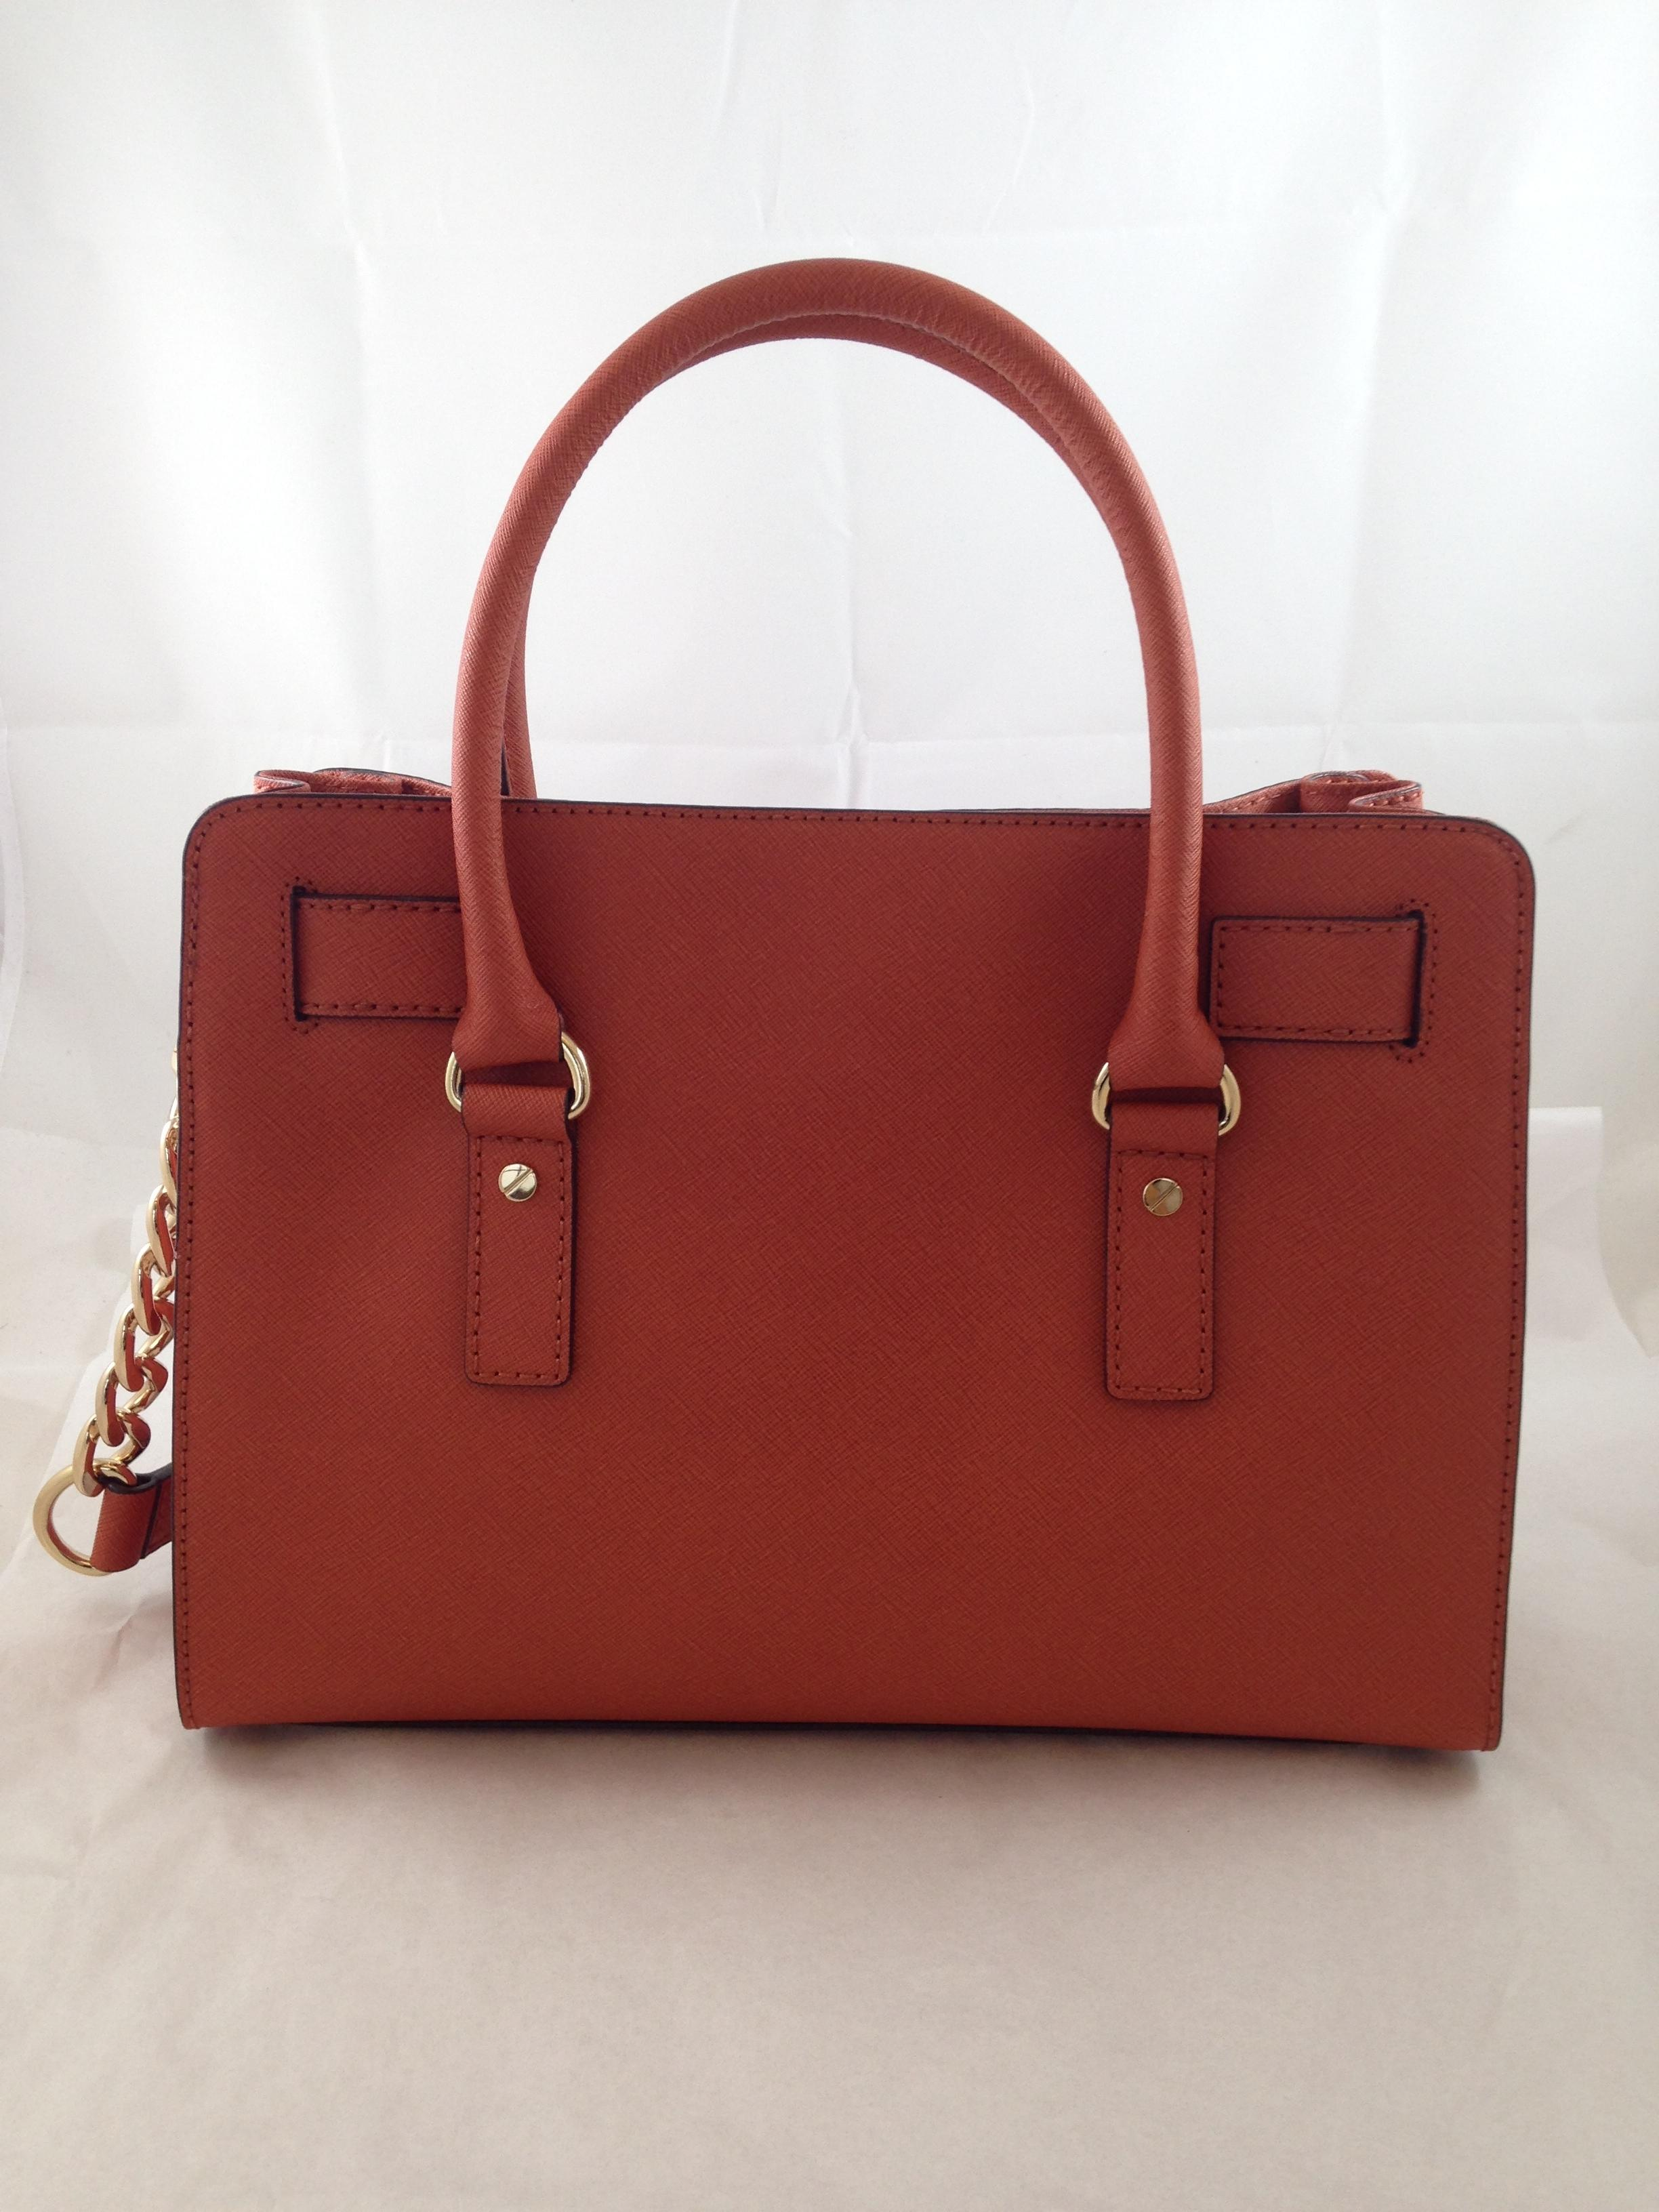 8f016ae4929a ... sale michael kors hamilton east west honey redish rust leather satchel  tradesy 52b8c fd610